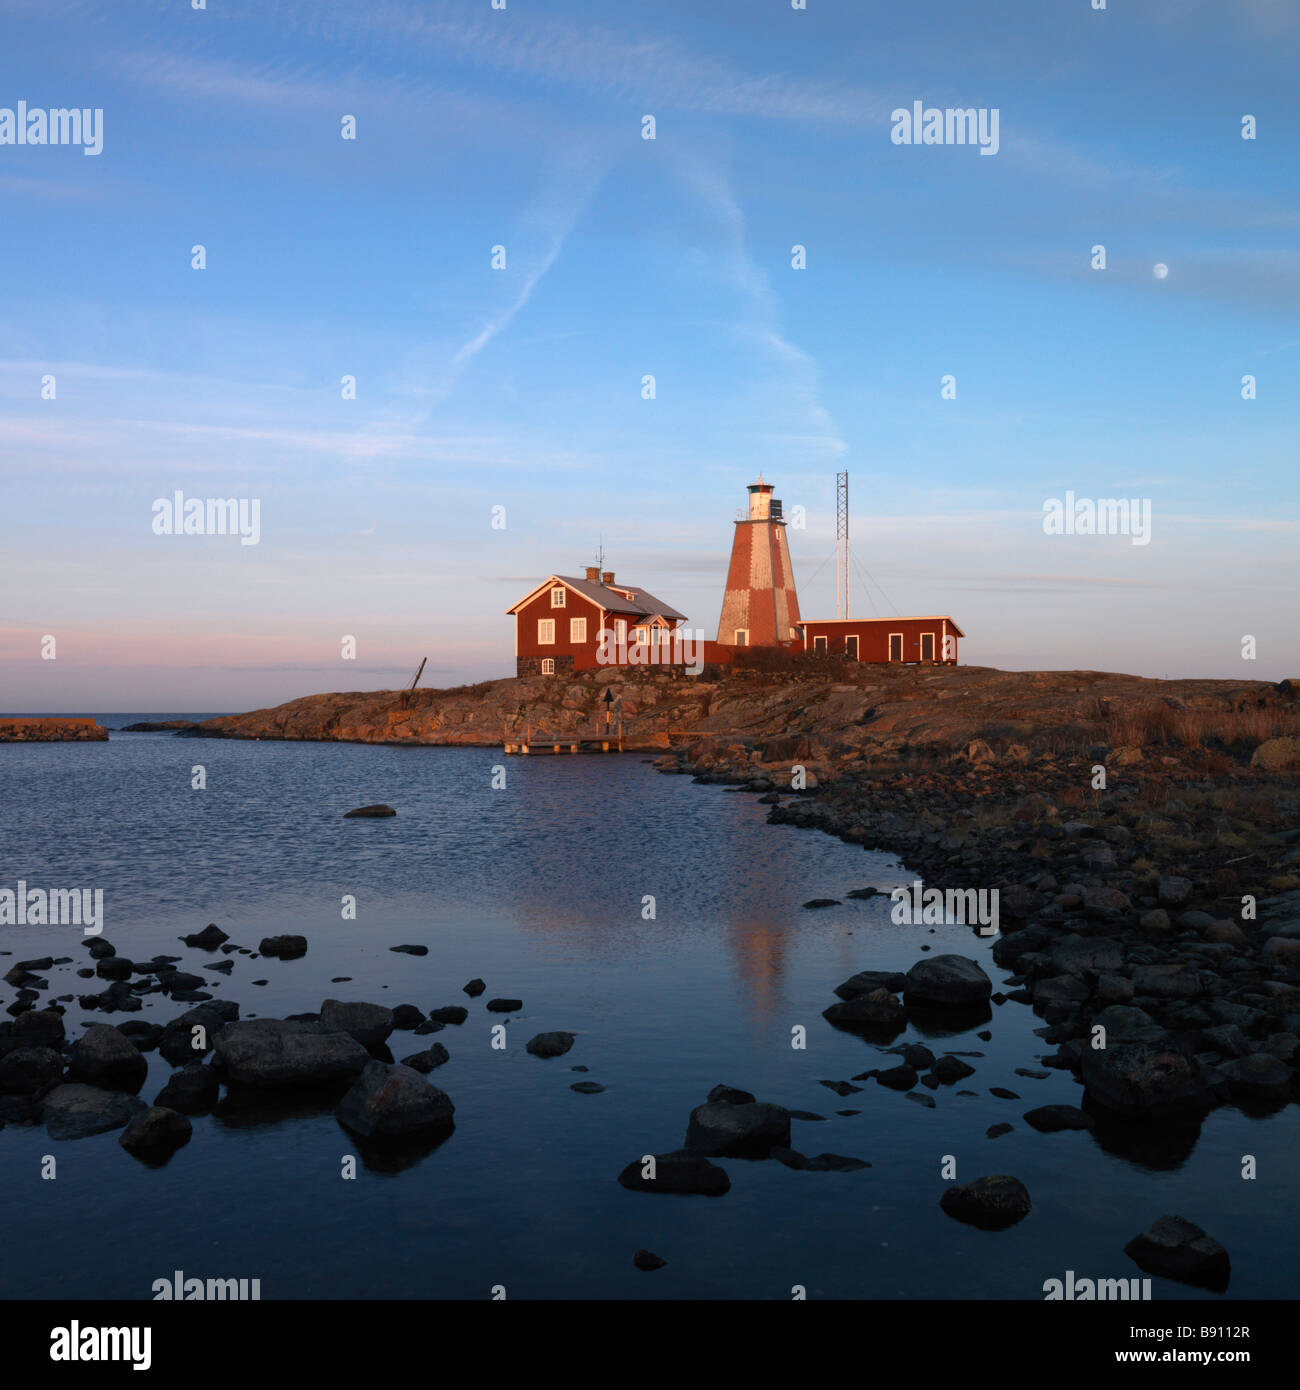 A lighthouse and houses Tjust archipelago Sweden. - Stock Image